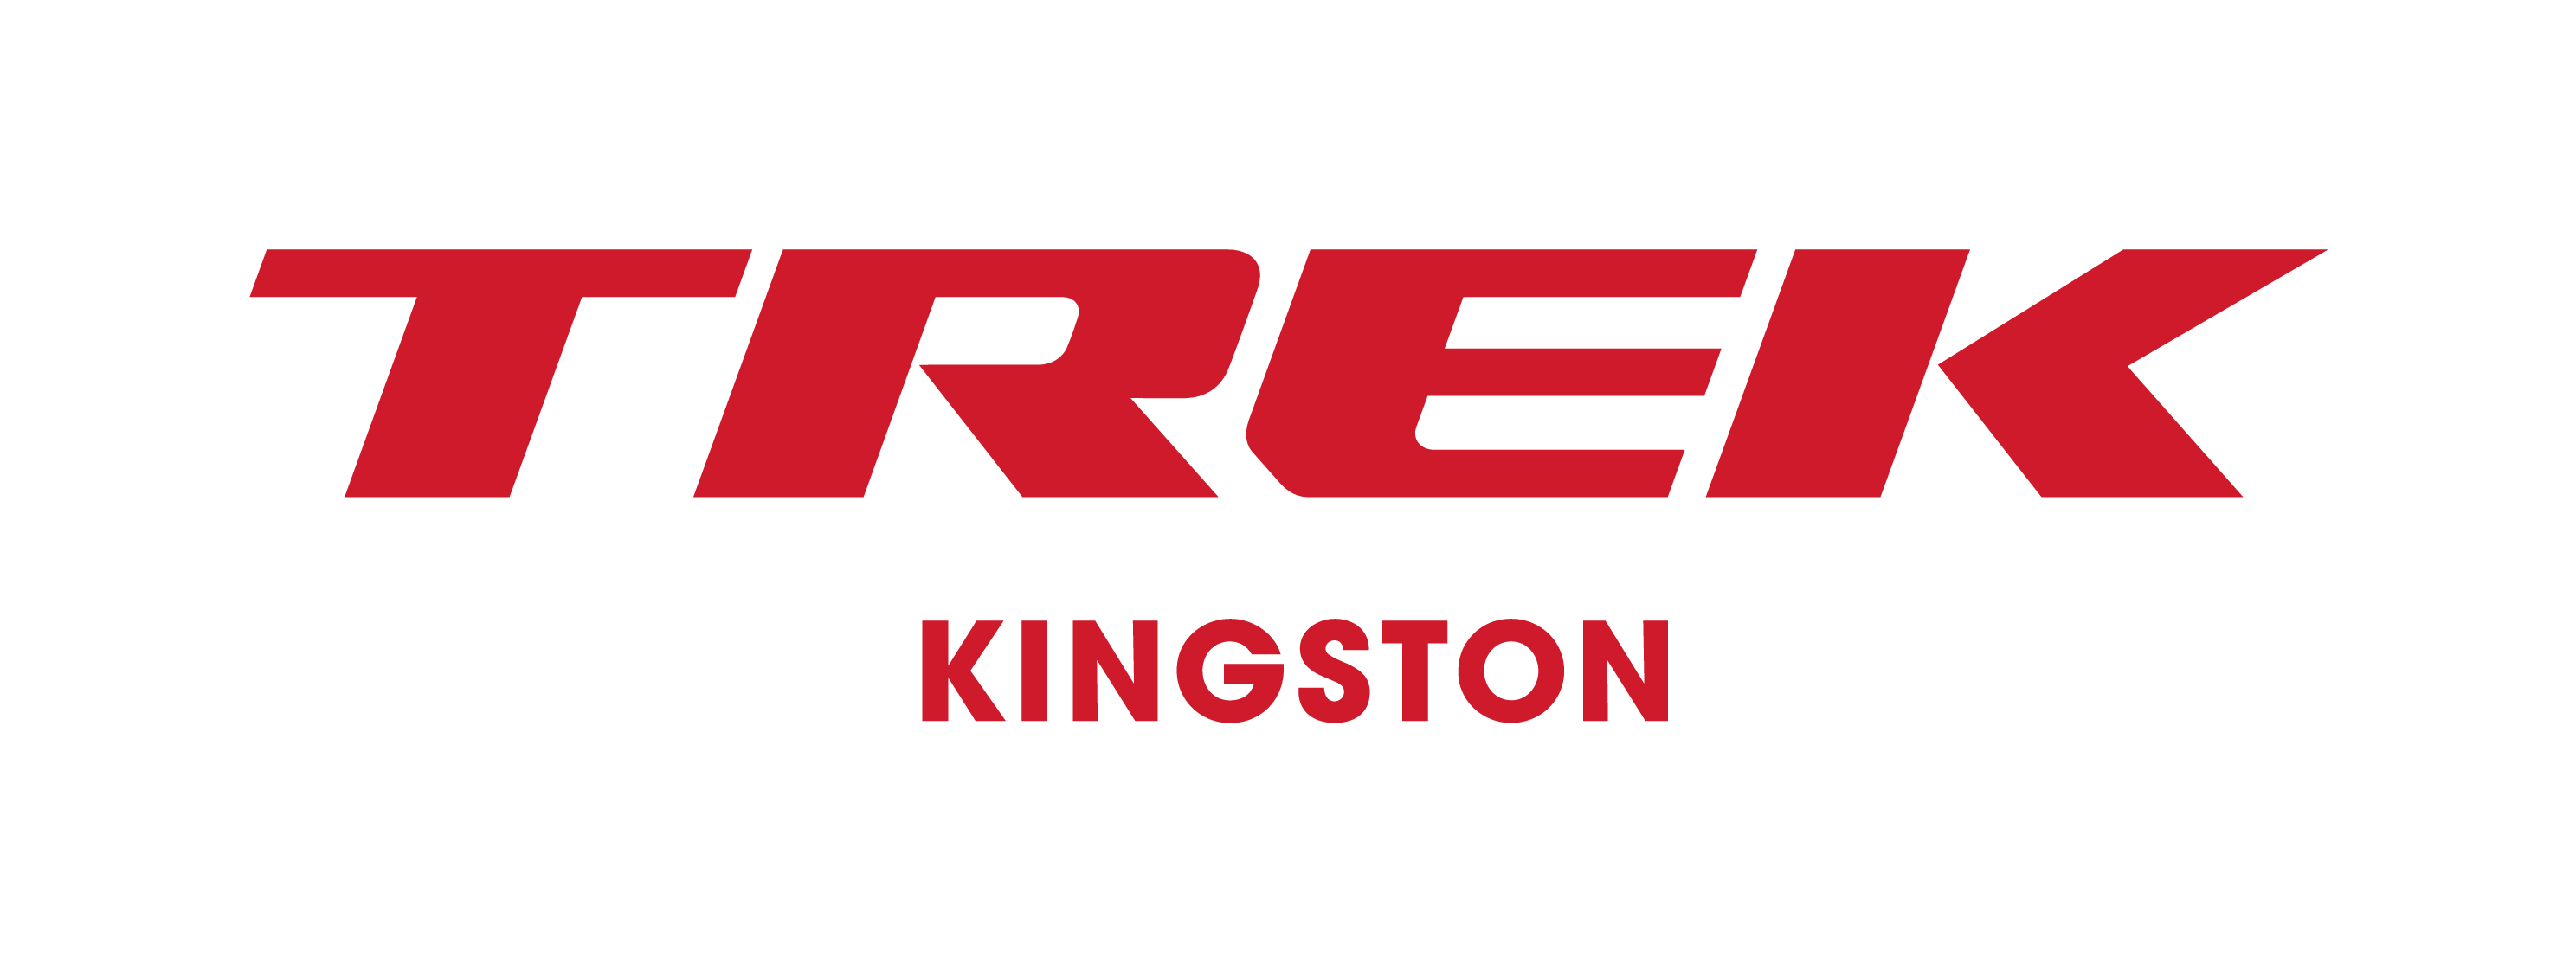 Trek Kingston